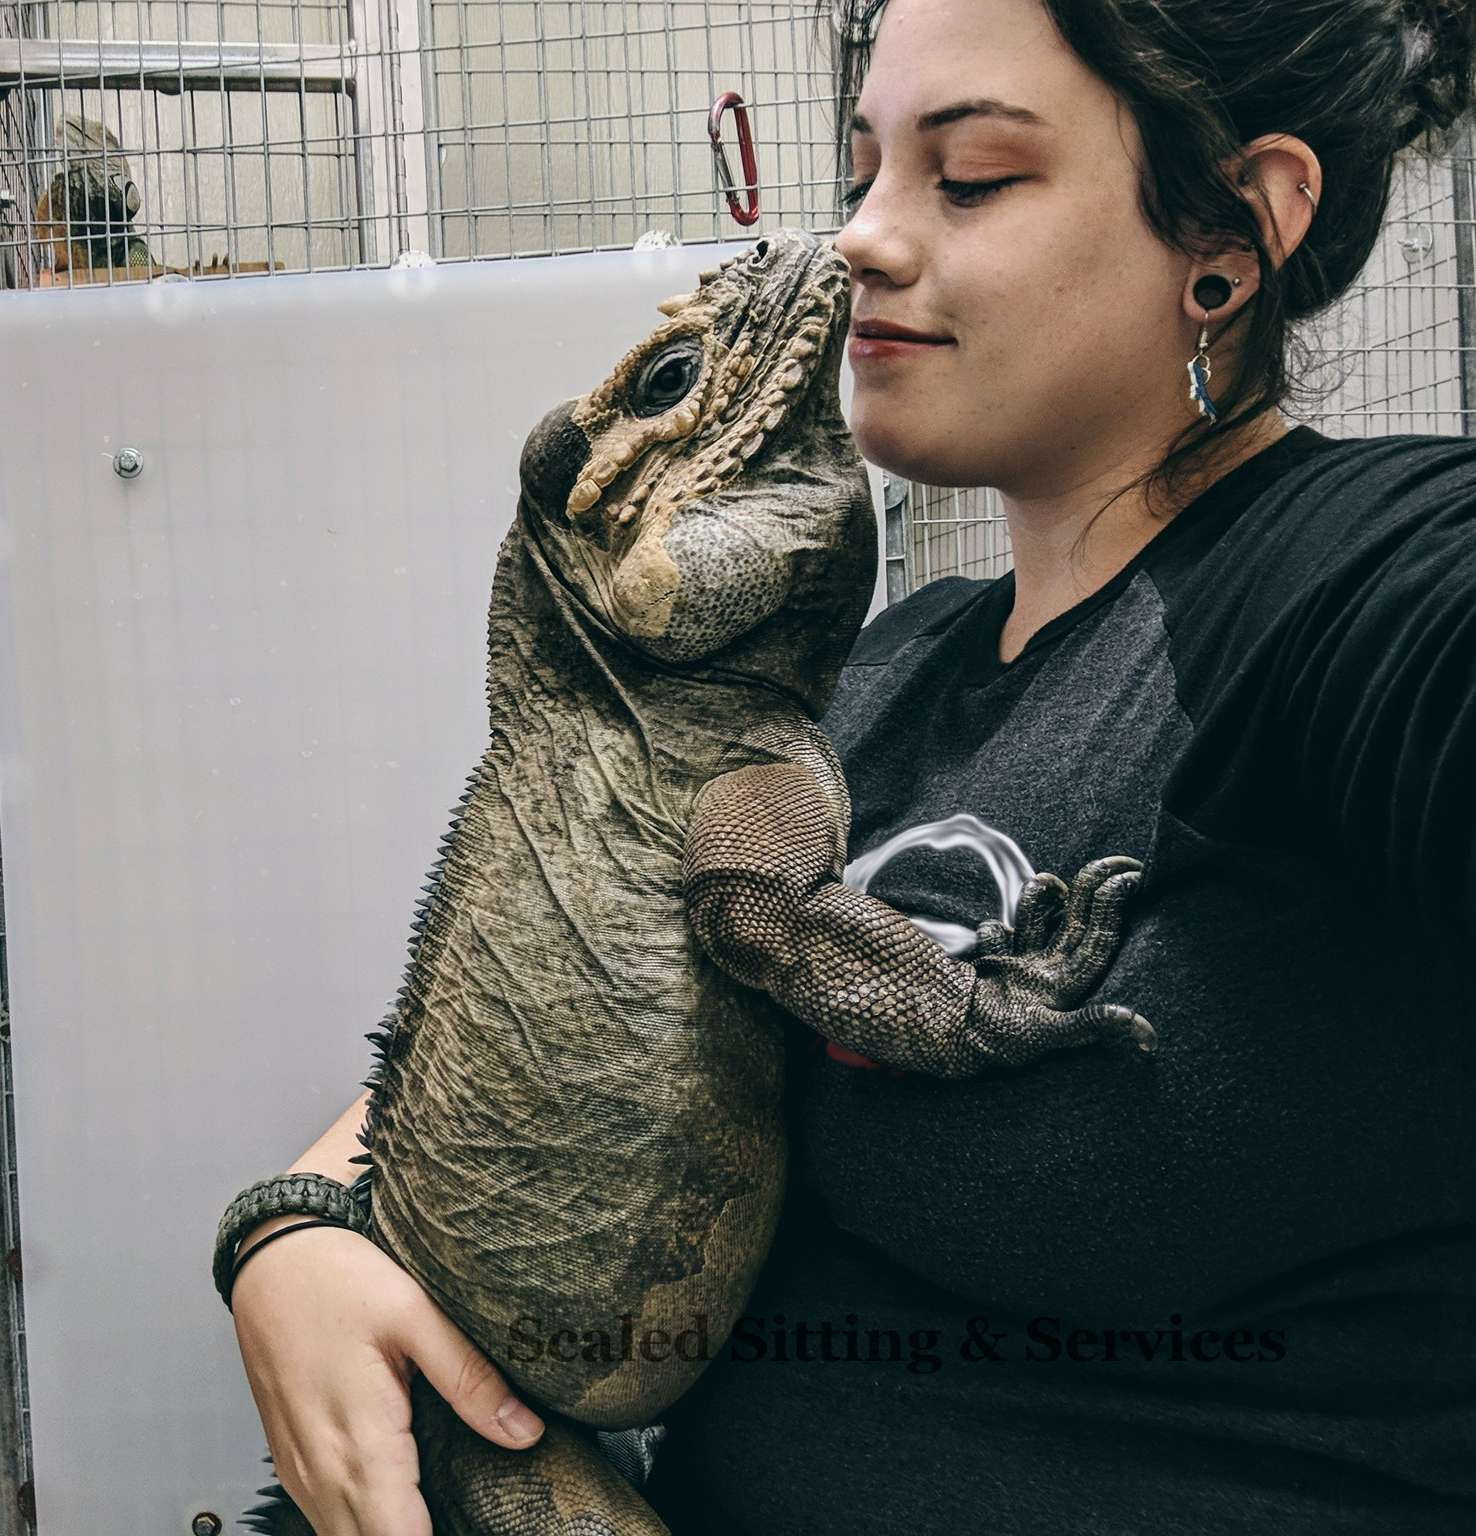 myself with an adult rhino iguana in my lap, our faces nearly touching